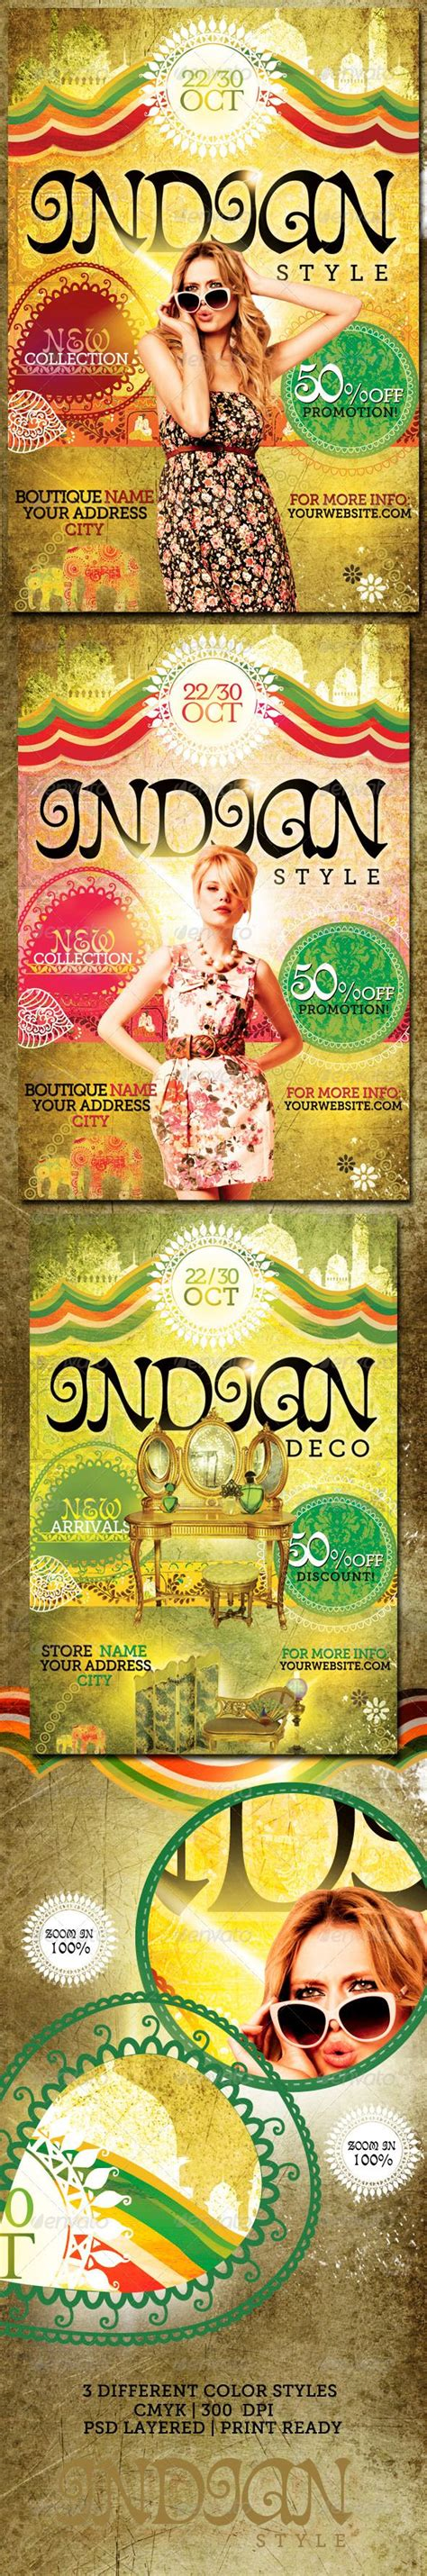 flyer design india indian style flyer template flyer template print